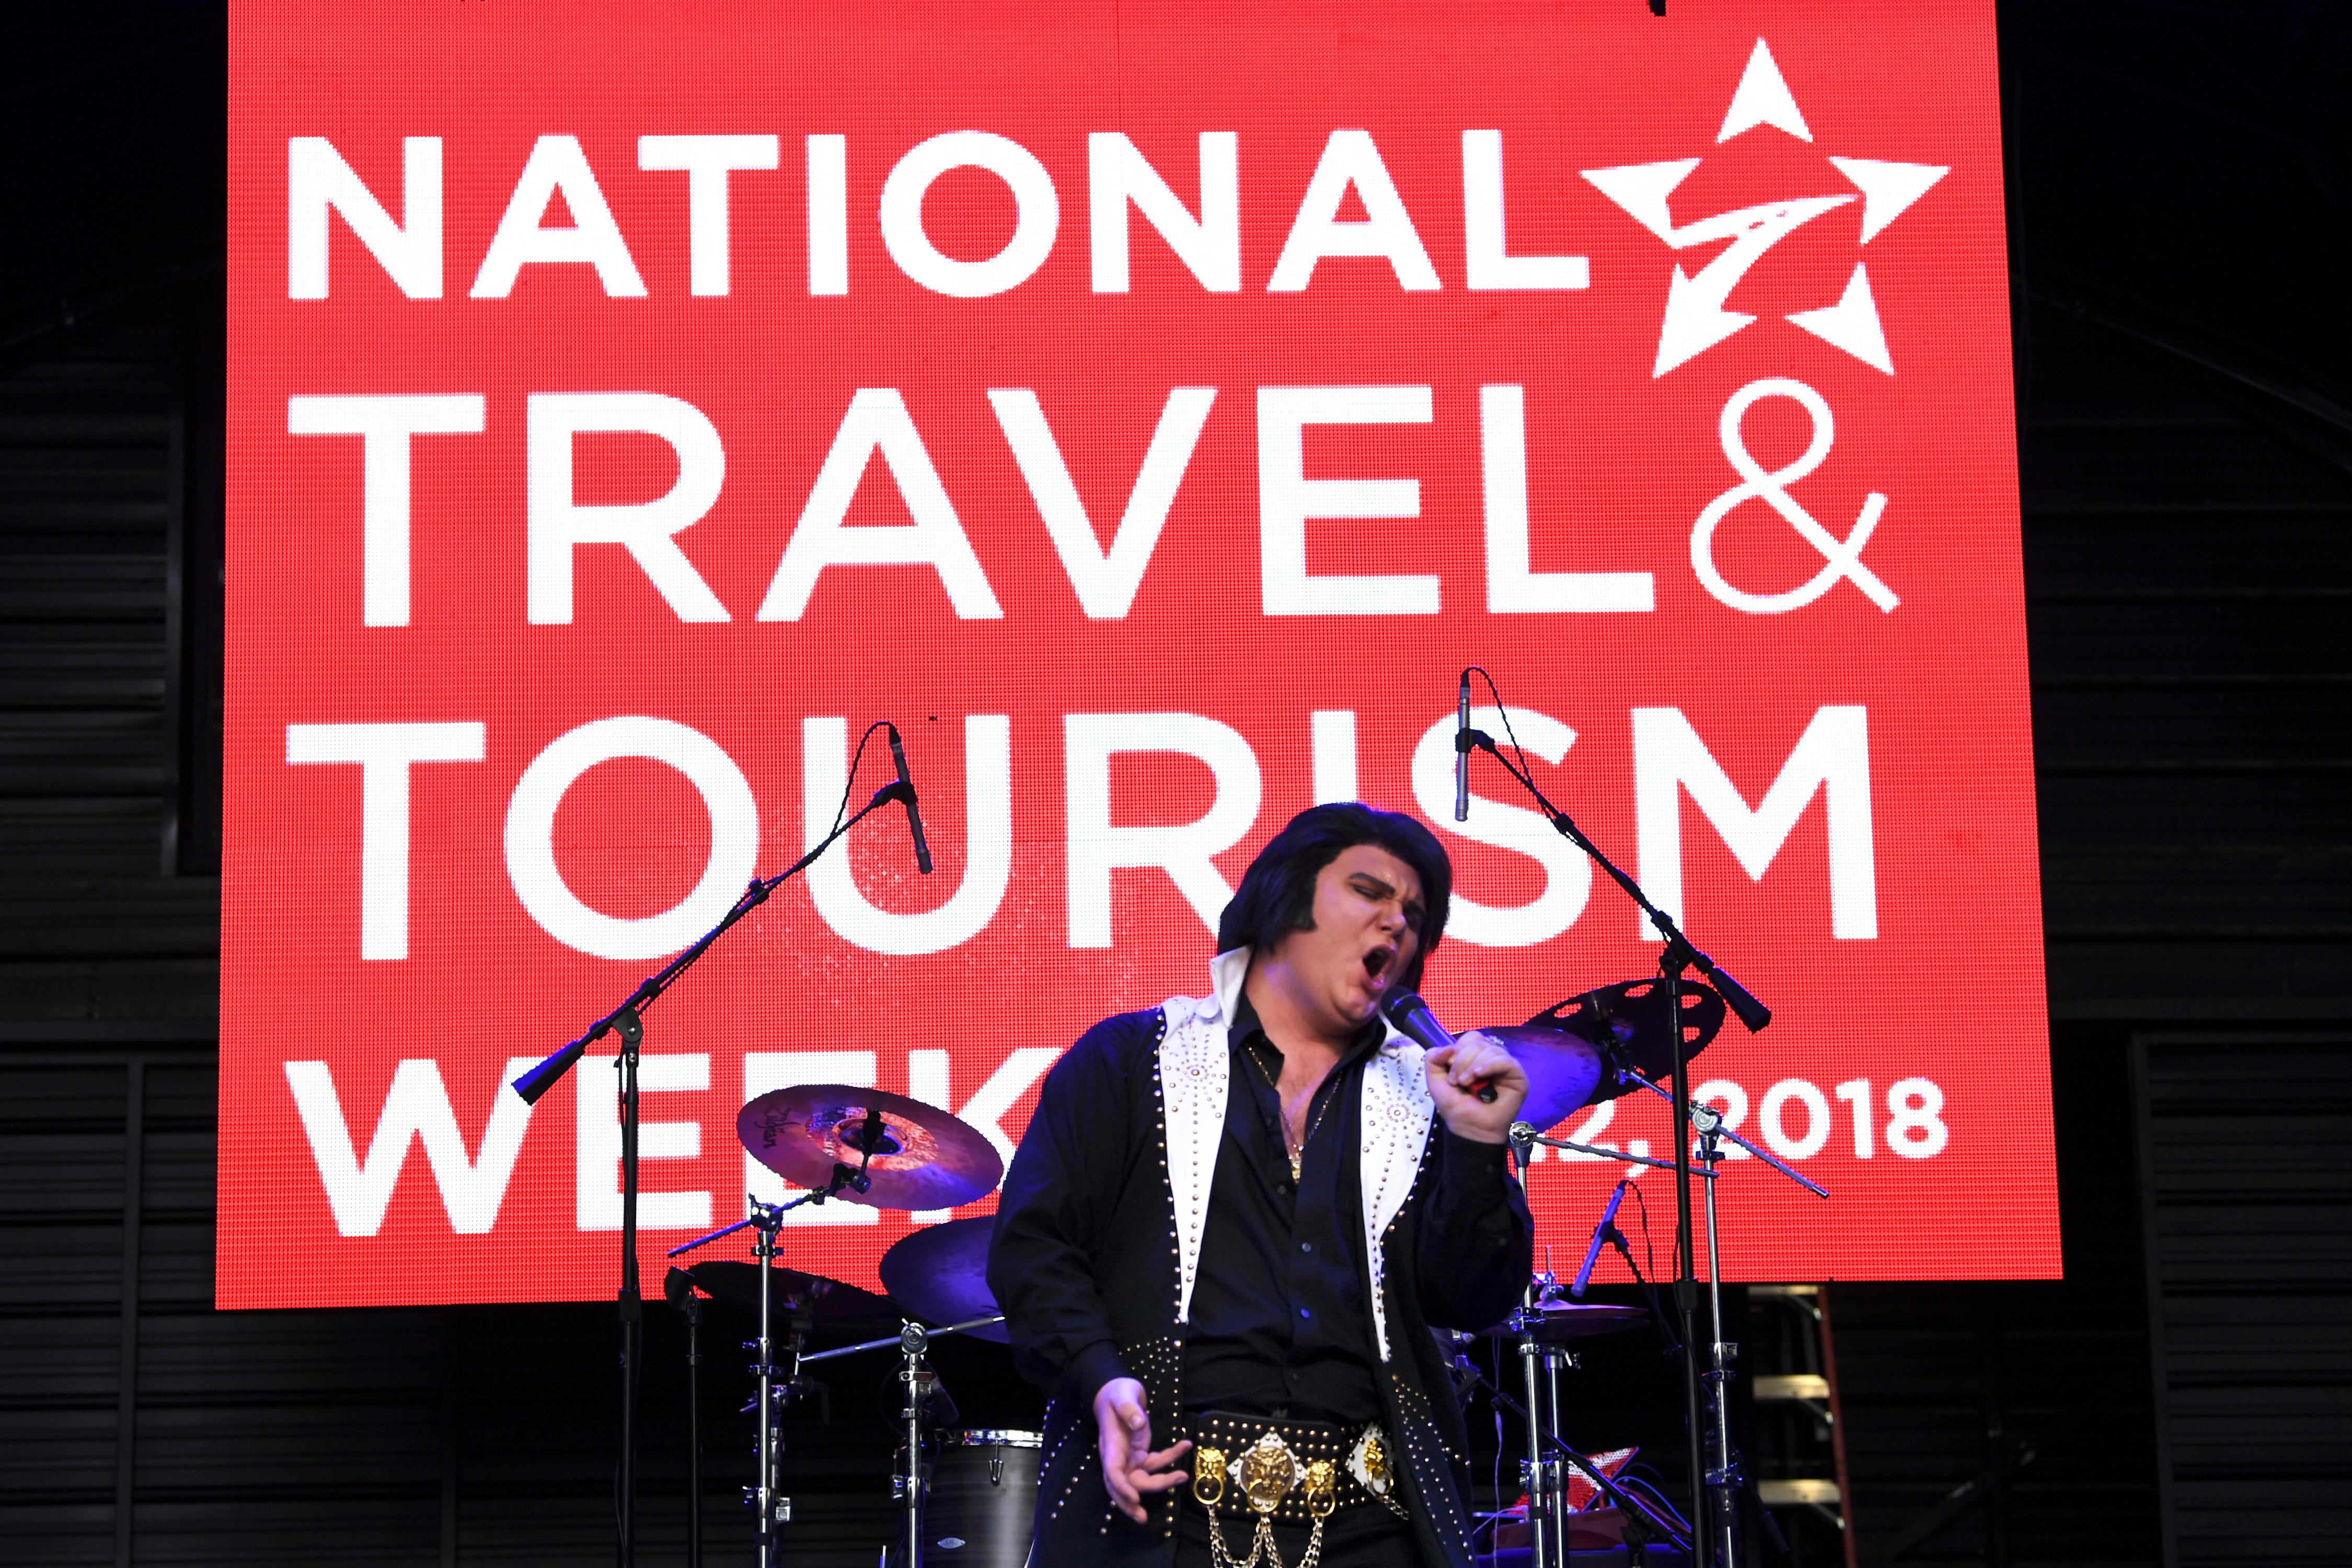 Elvis tribute artist Tyler James performs as part of National Travel and Tourism Week Tuesday, May 8, 2018, at the Fremont Street Experience in downtown Las Vegas. CREDIT: Sam Morris/Las Vegas News Bureau